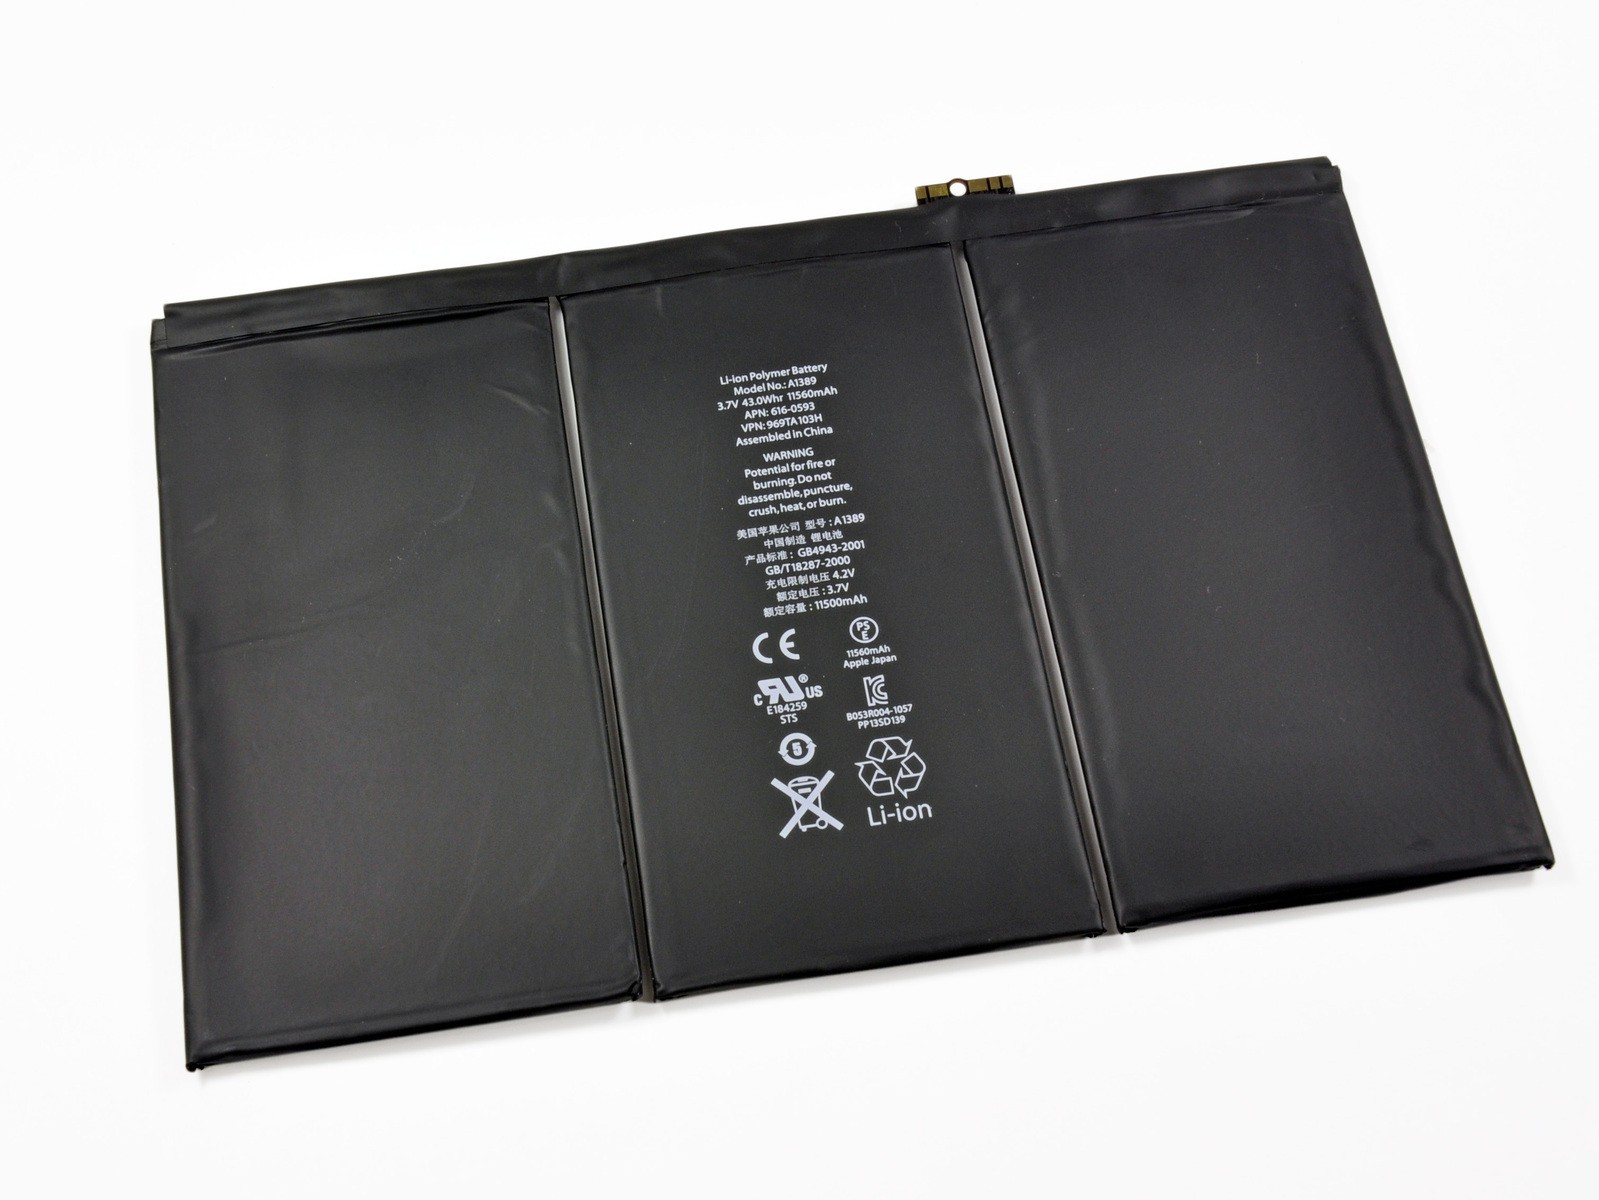 iPad 3/4 Battery, Part Only, New, IF116-001-1